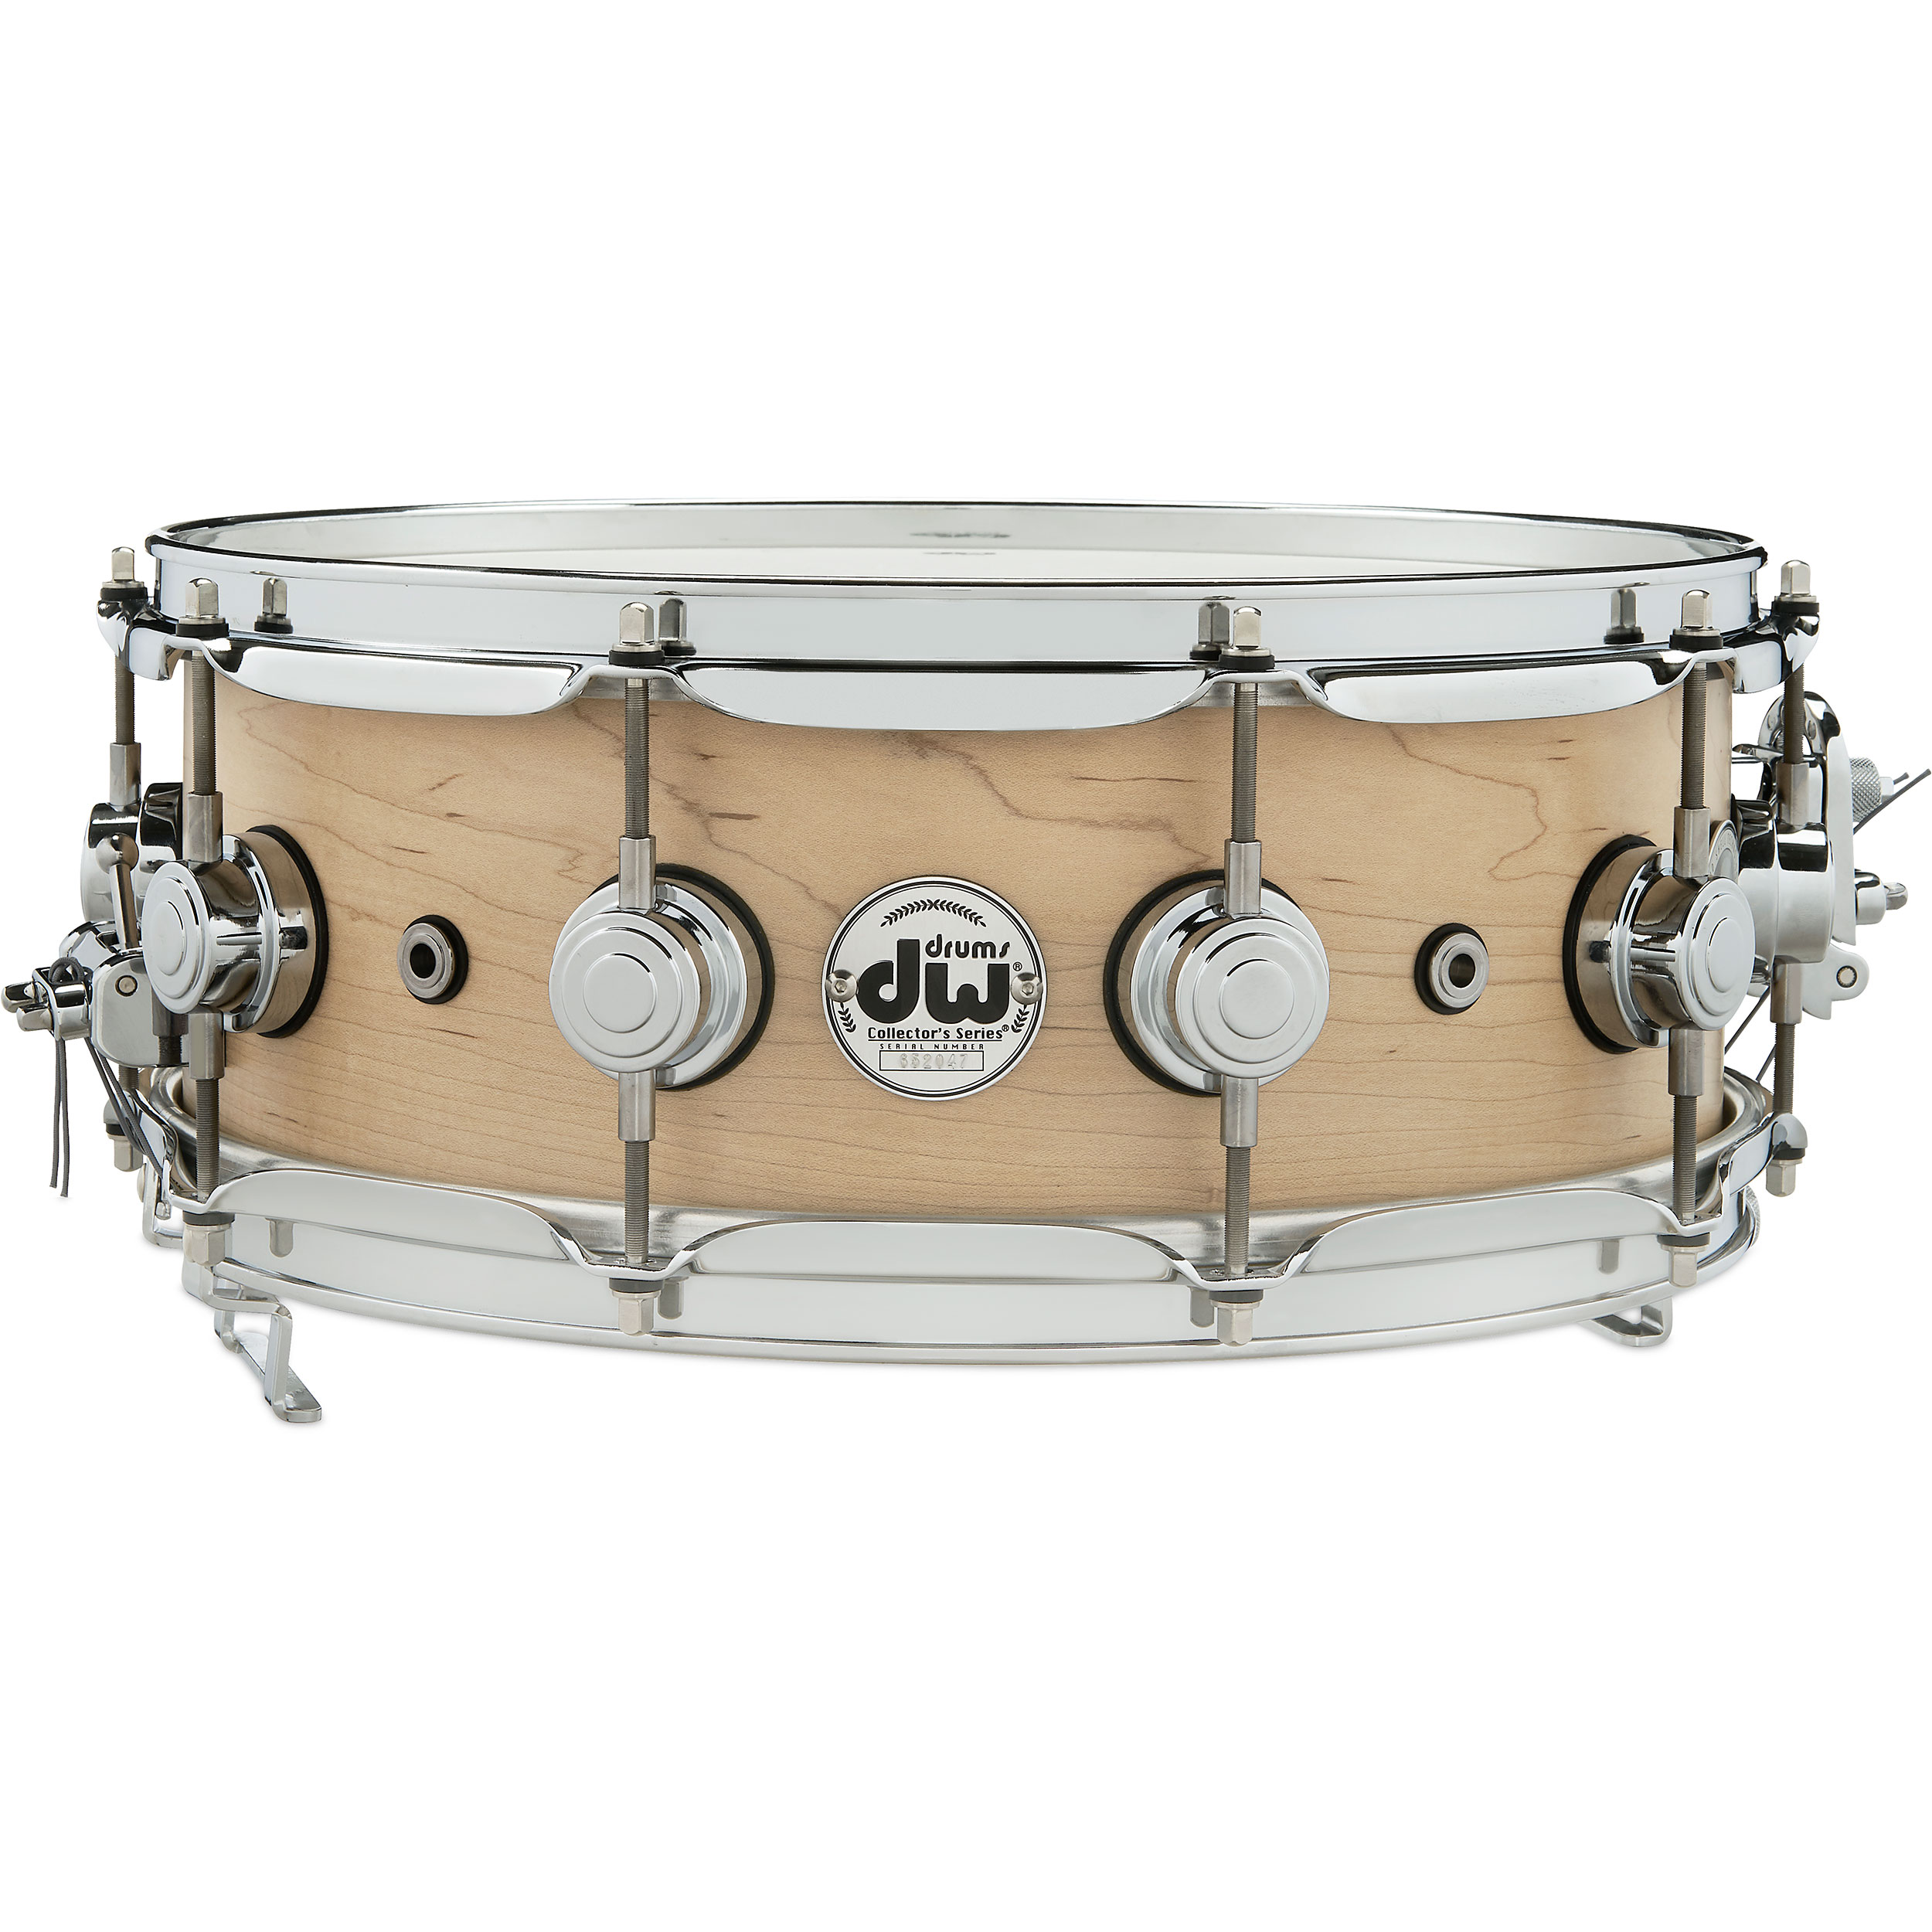 "DW 5.5"" x 14"" Pure Maple Super-Sonic Solid Shell Snare Drum in Satin Oil"